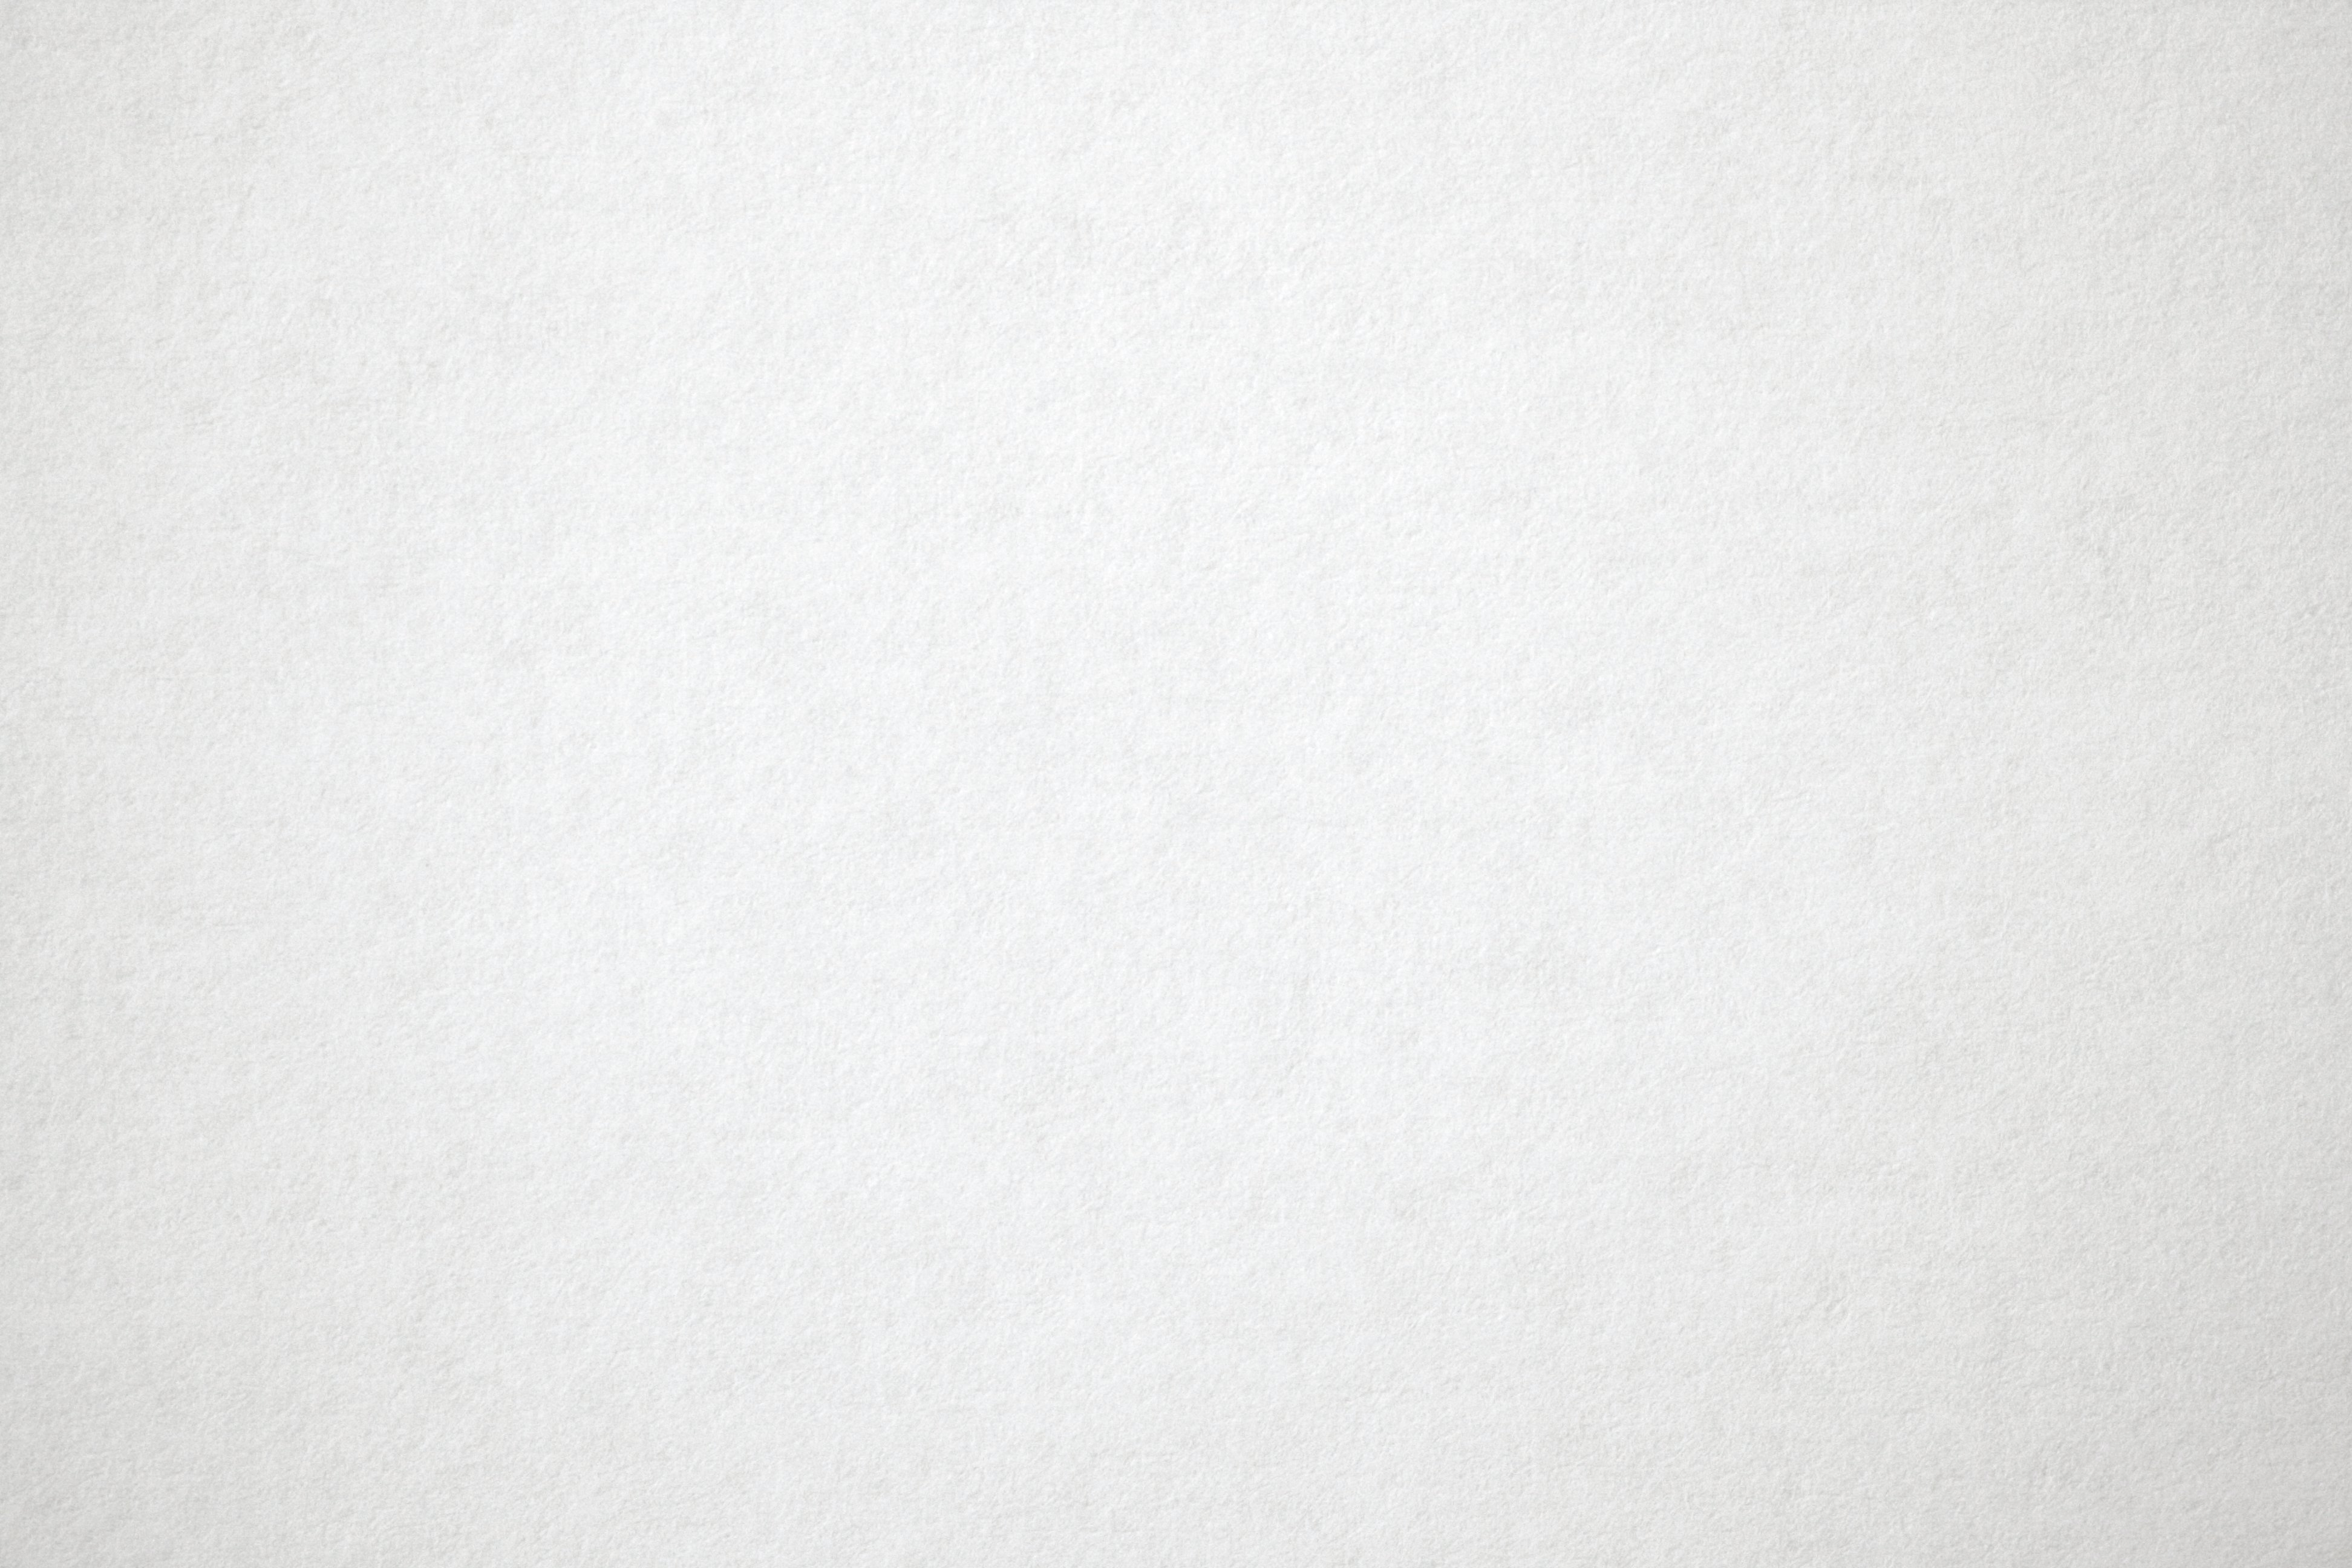 White Texture Seamless Background Background White Paper Texture